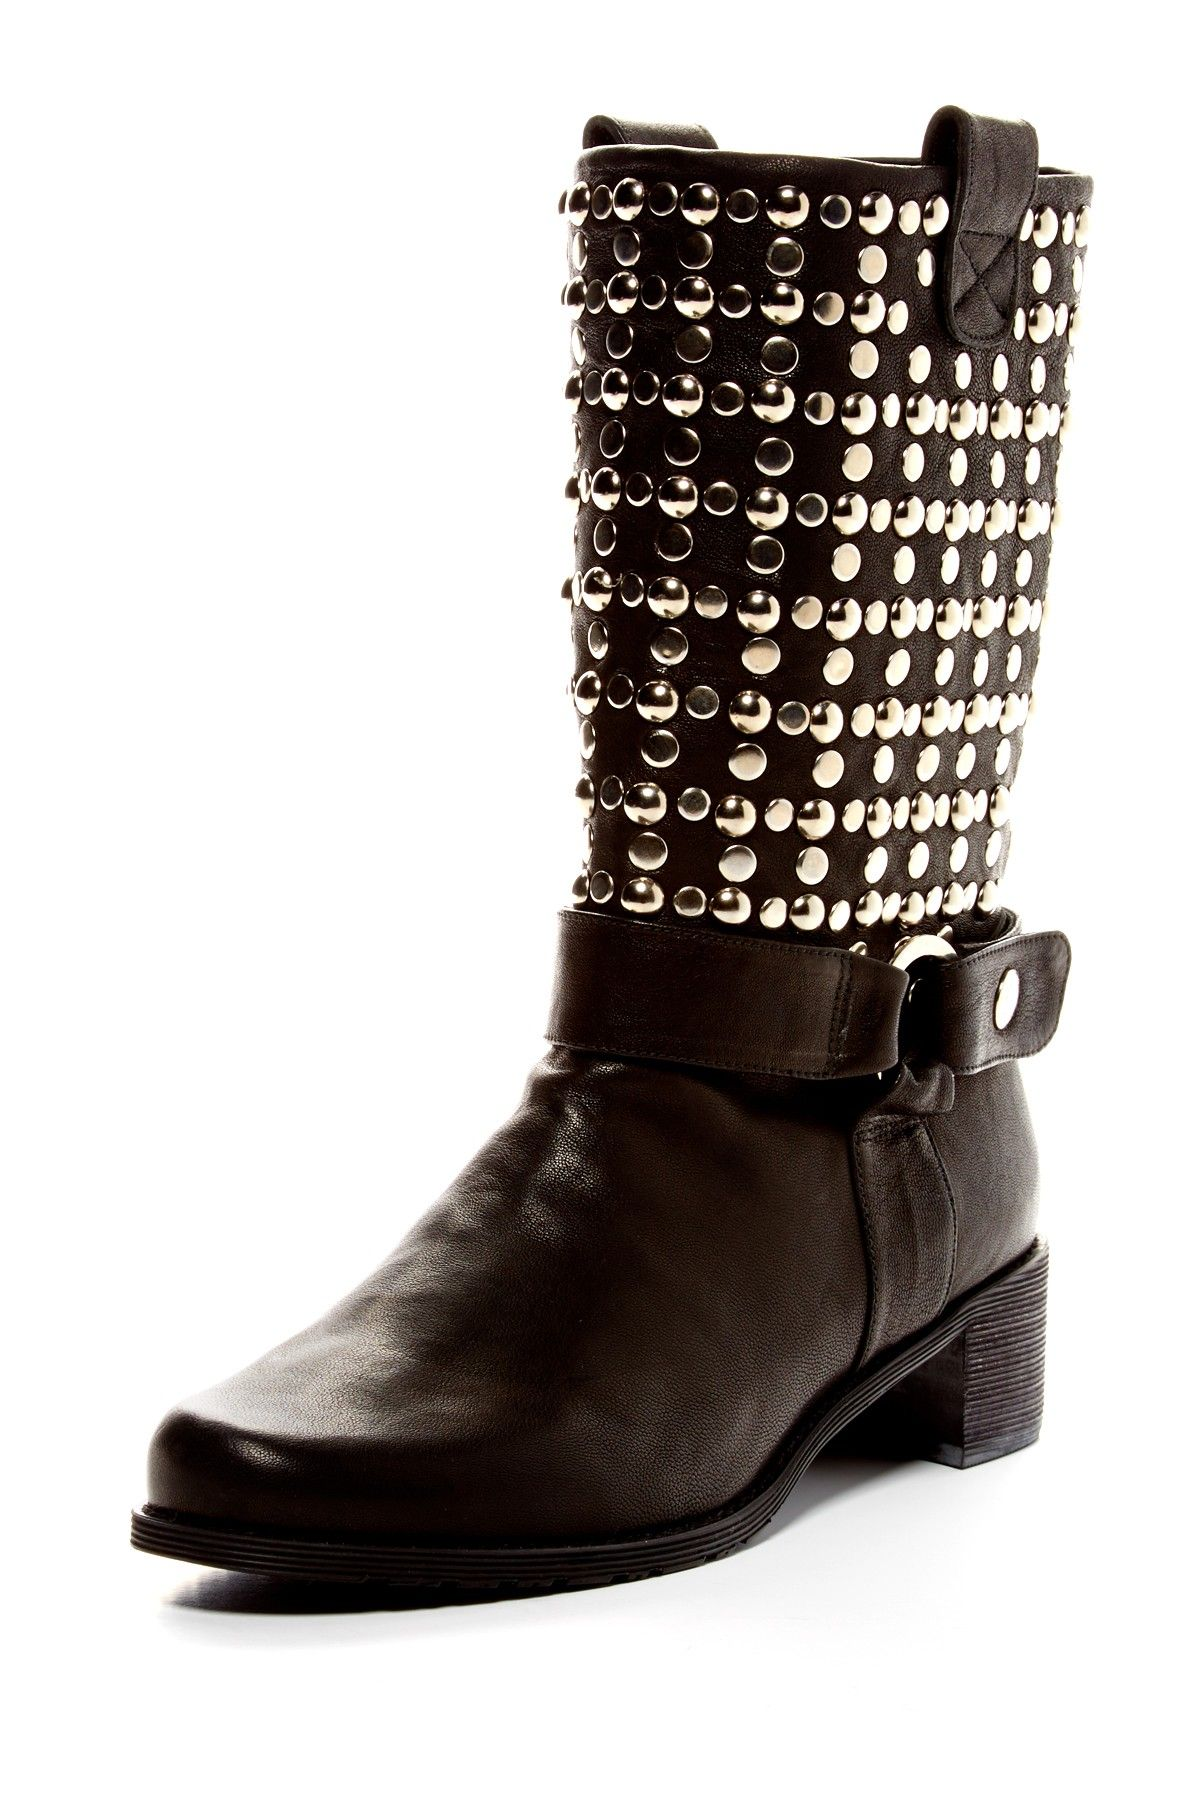 Stuart Weitzman Stud-Embellished Moto Boots discount websites Be2Uc